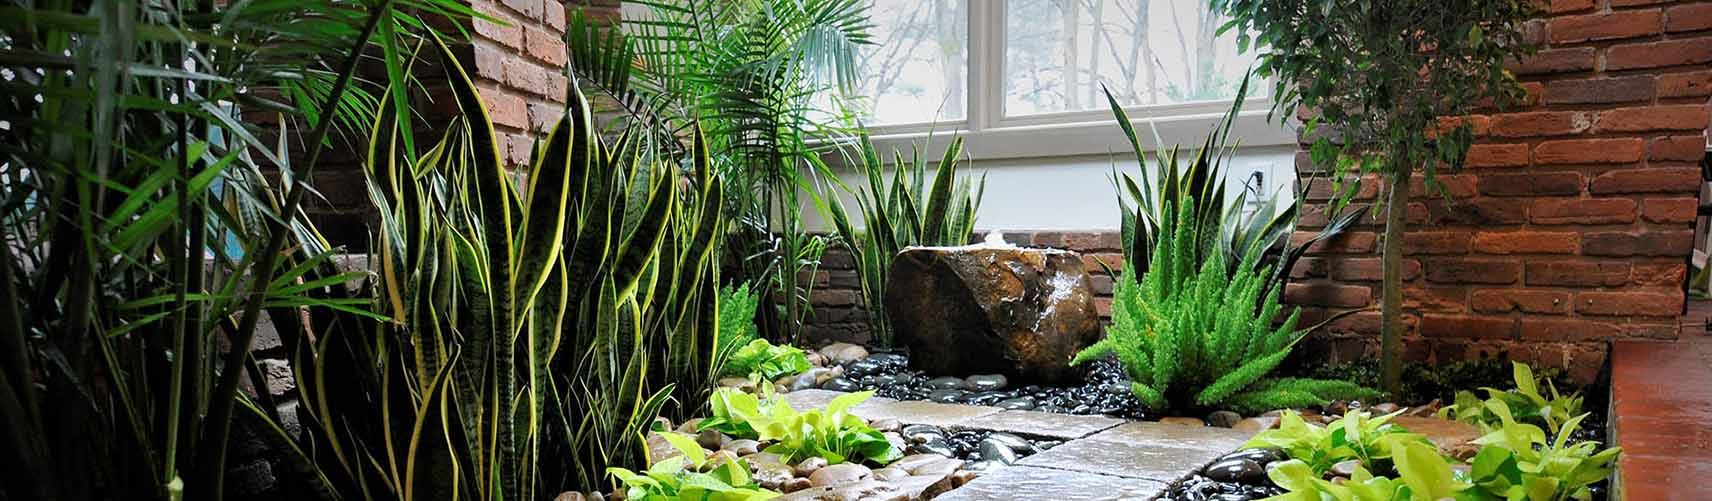 Maryland Heights Landscaping Company, Landscaper and Landscaping Services